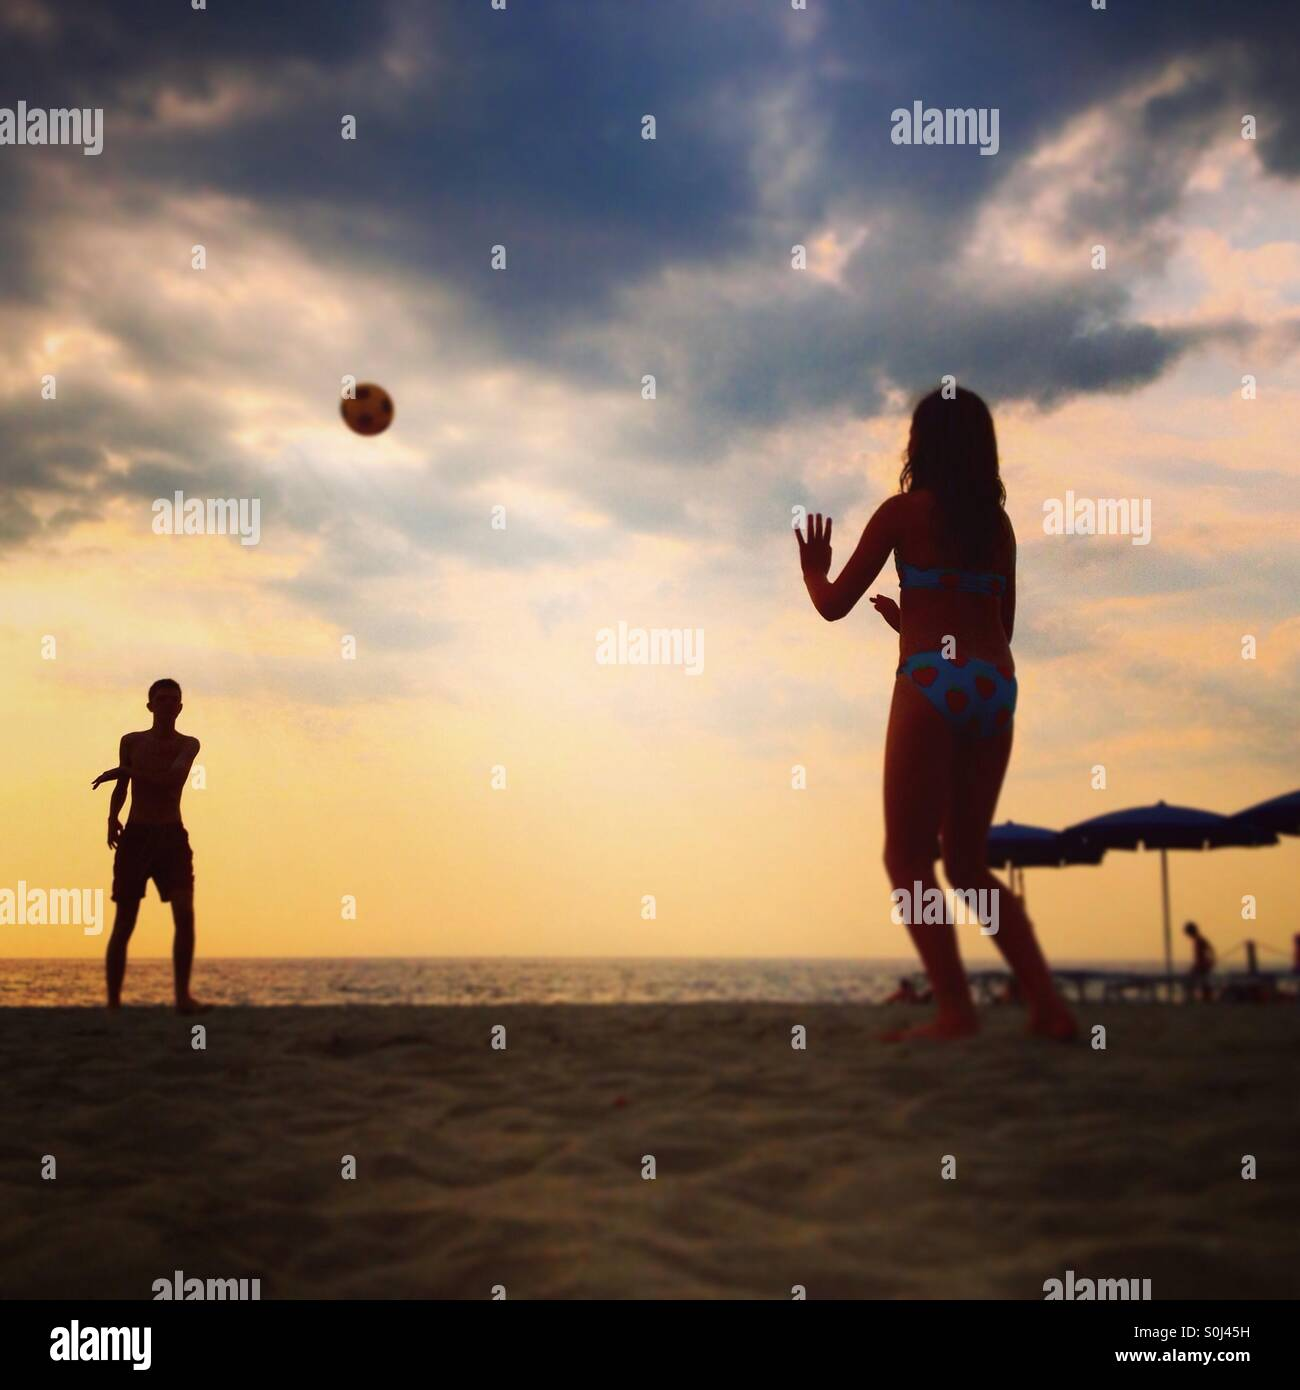 Boy and girl playing with a ball on the beach - Stock Image